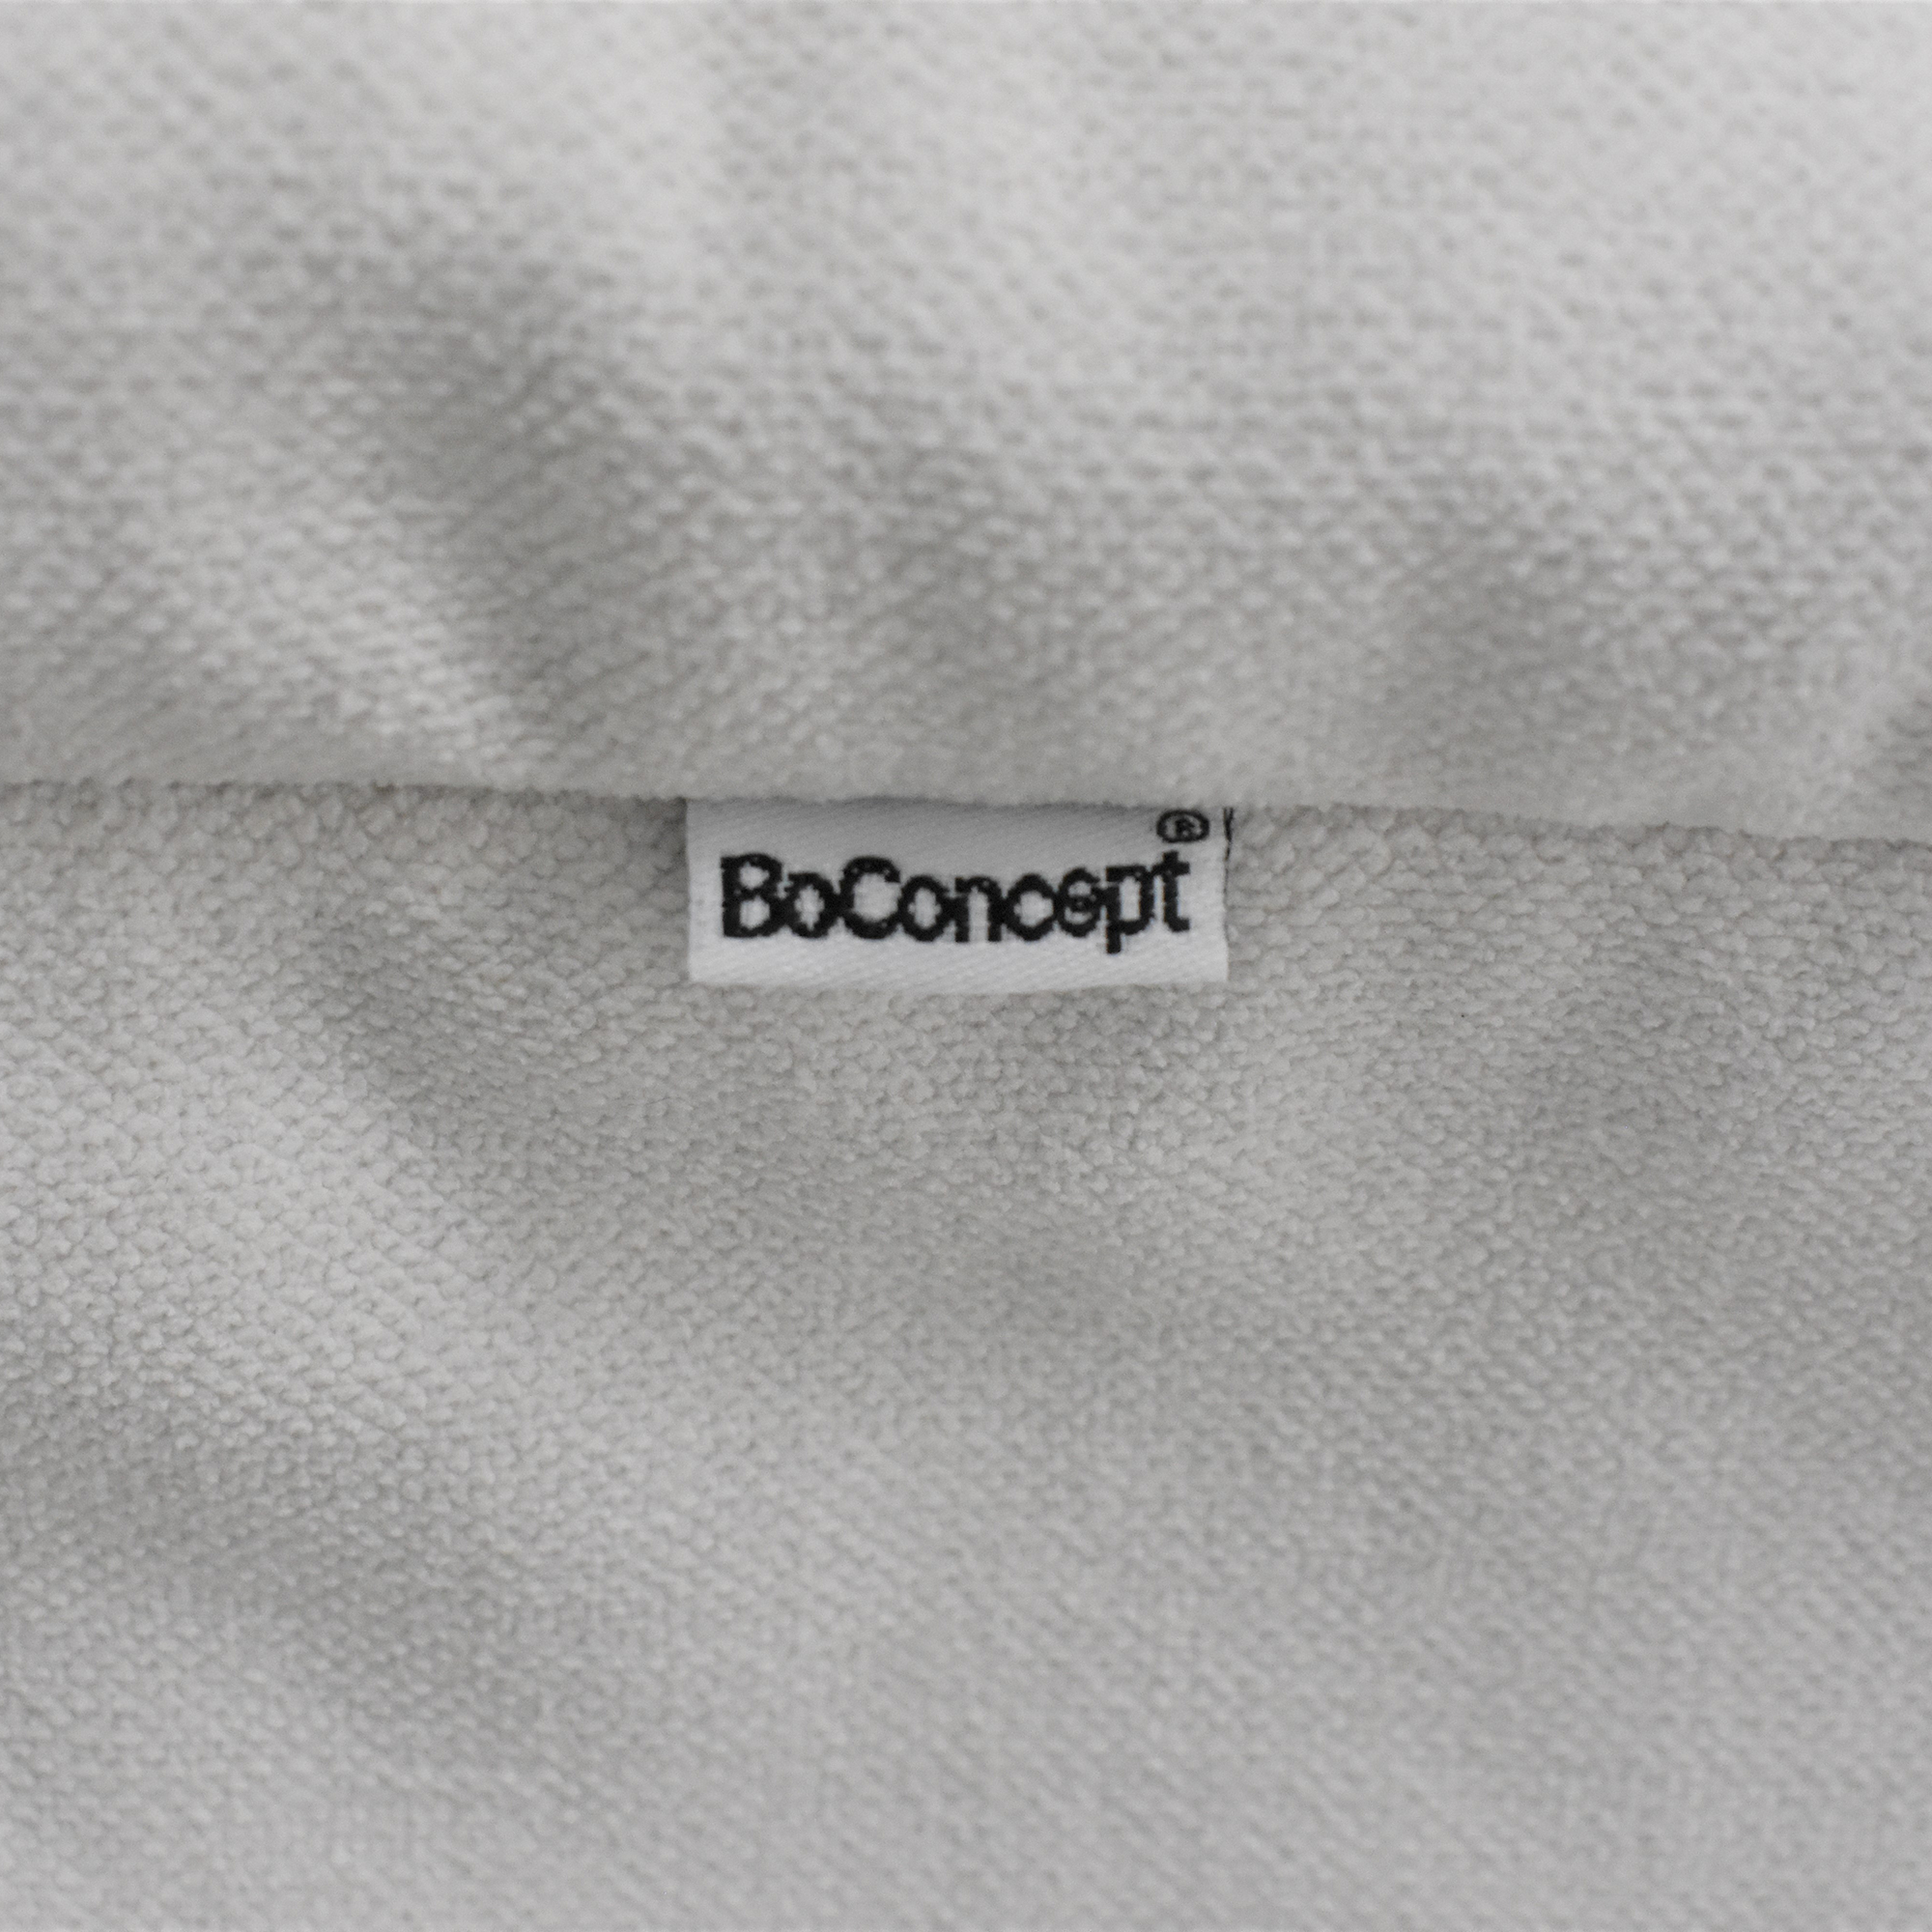 BoConcept Xtra Footstool with Sleeping Function / Chairs